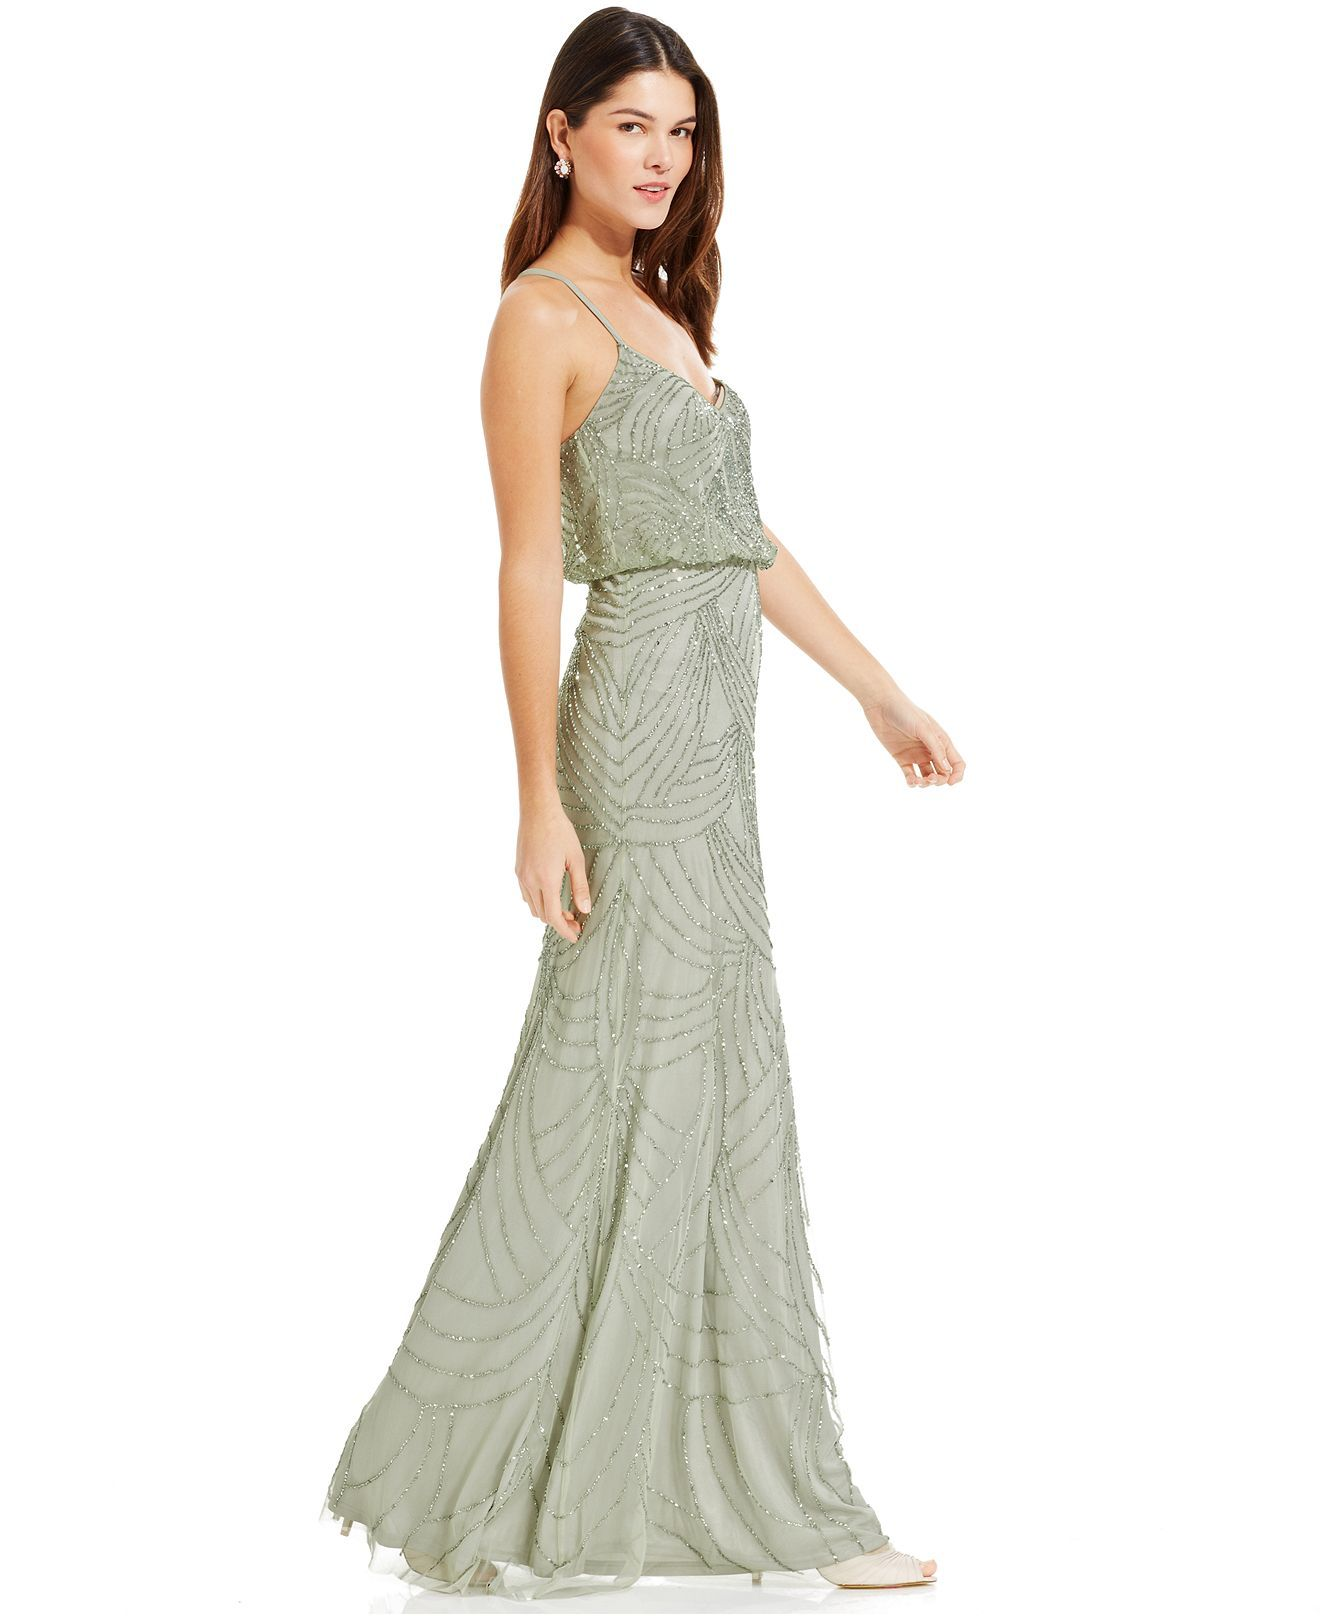 Wedding dresses at macy's  Adrianna Papell Sleeveless Beaded Blouson Gown  Dresses  Women